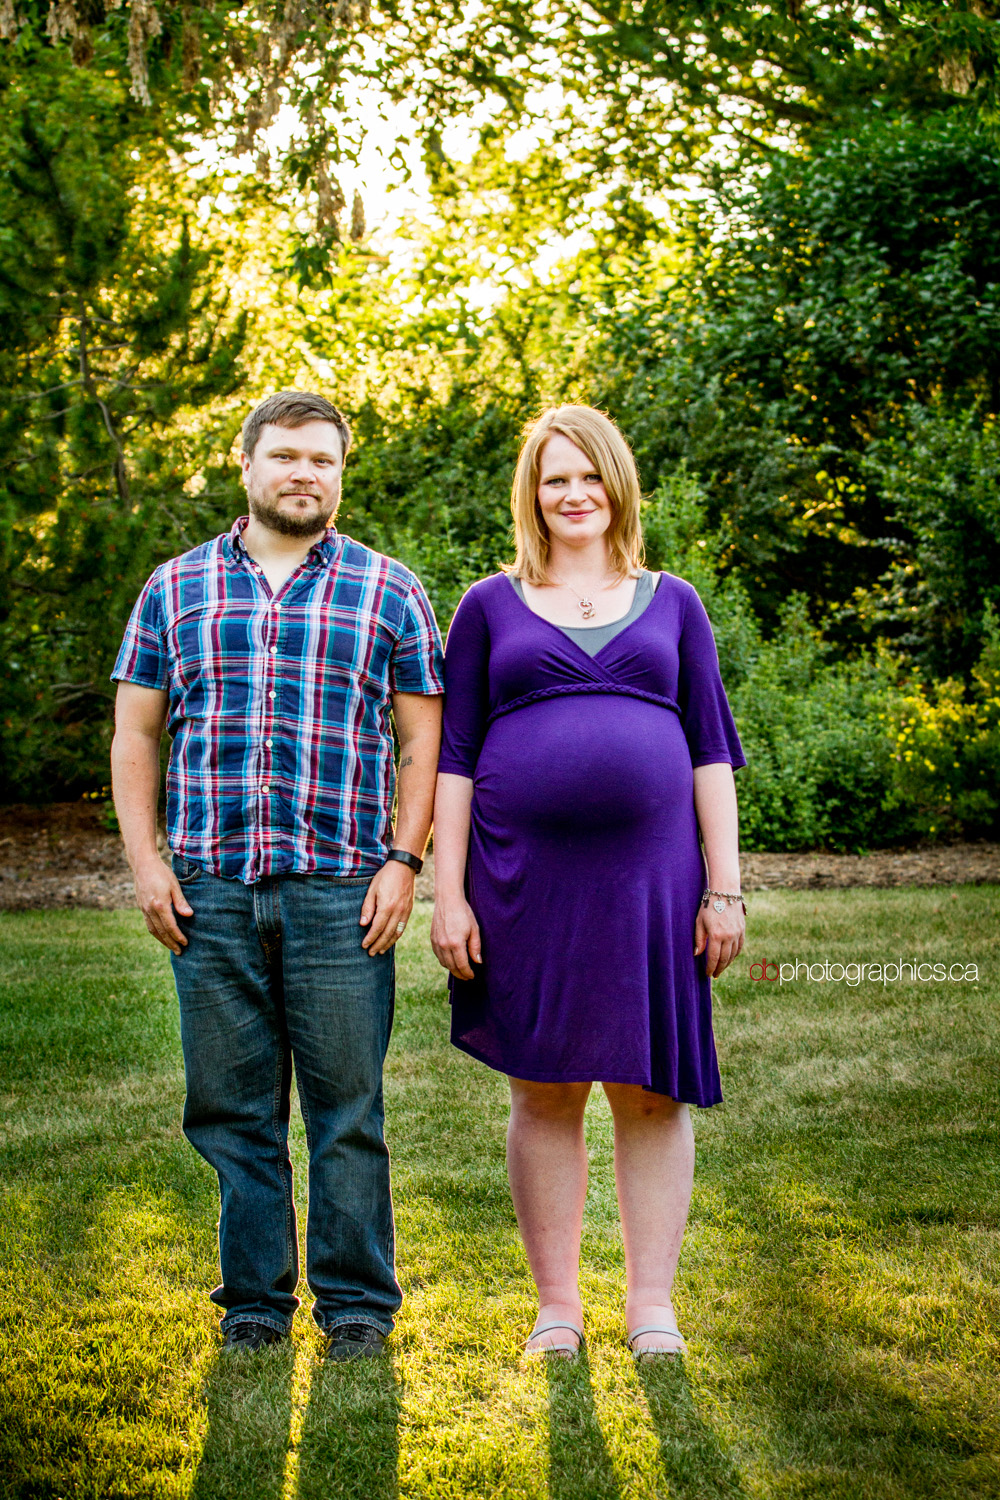 Elisabeth & Trent - Maternity Session - 20140707 - 0023.jpg